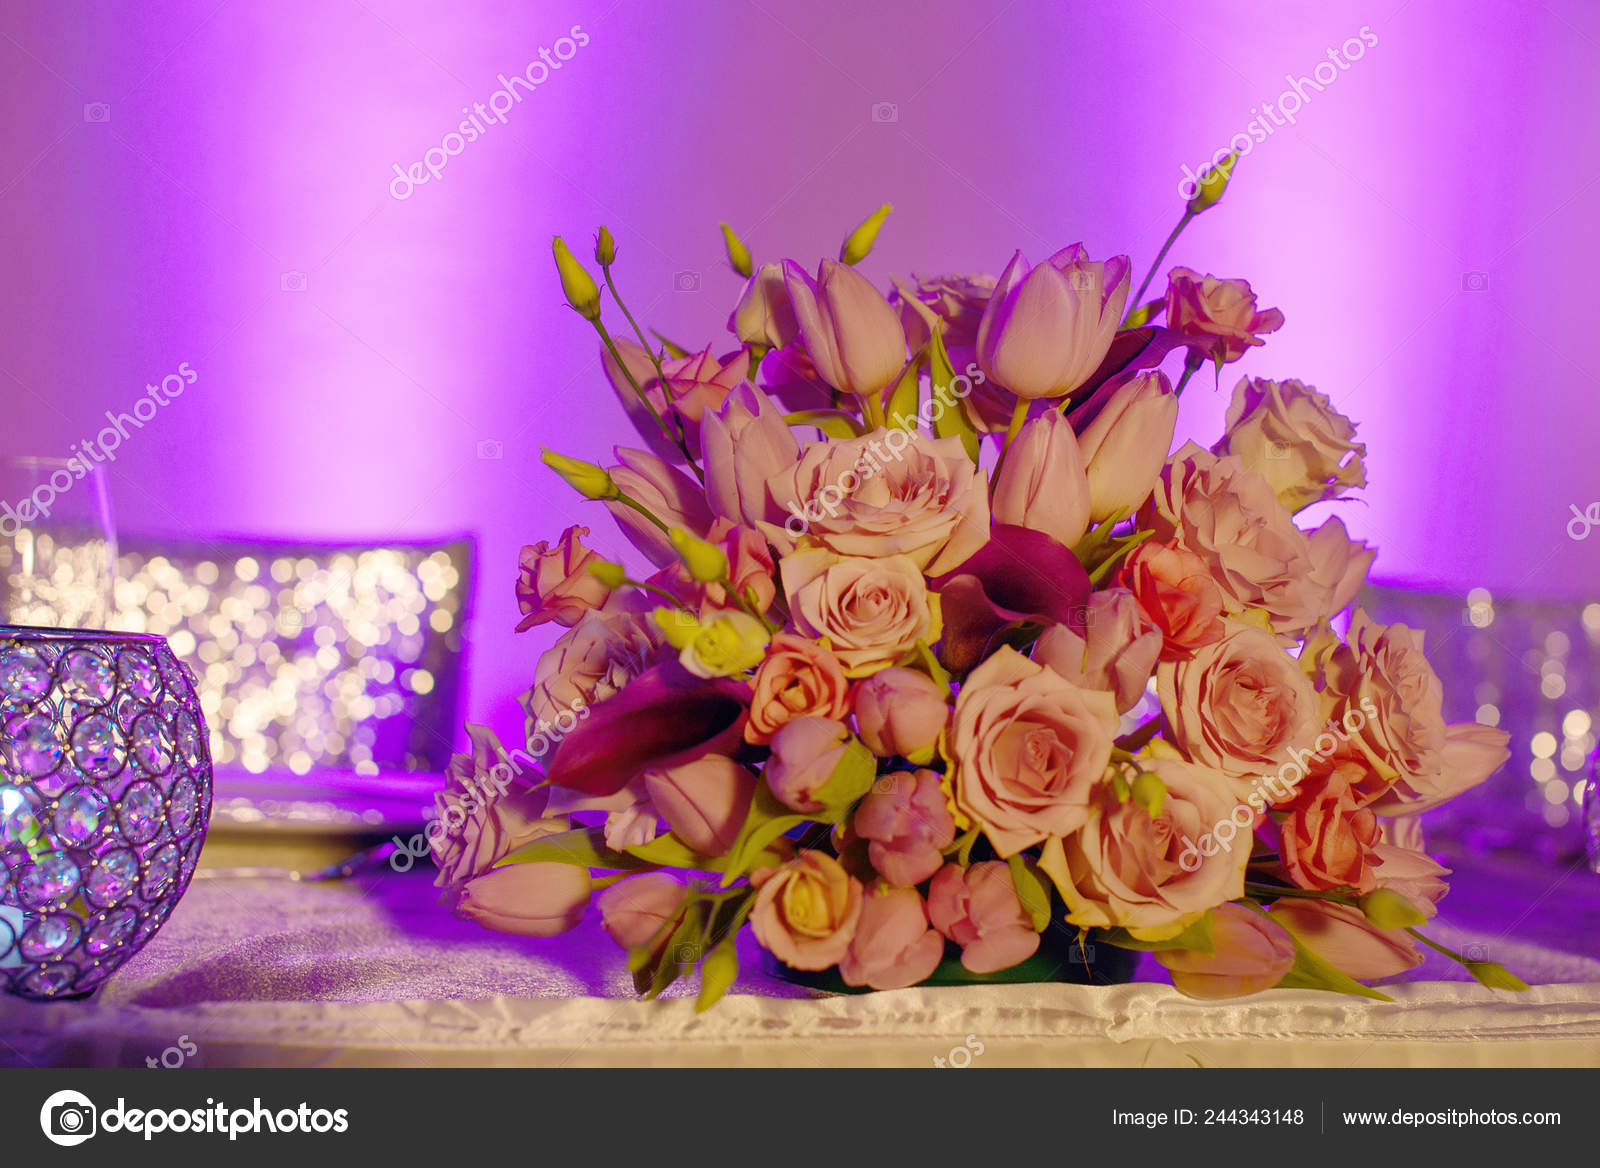 Classy Floral Arrangement Pastel Pink Hues Bouquet Featuring Pink Roses —  Stock Photo © AnaIacobPhotography #244343148